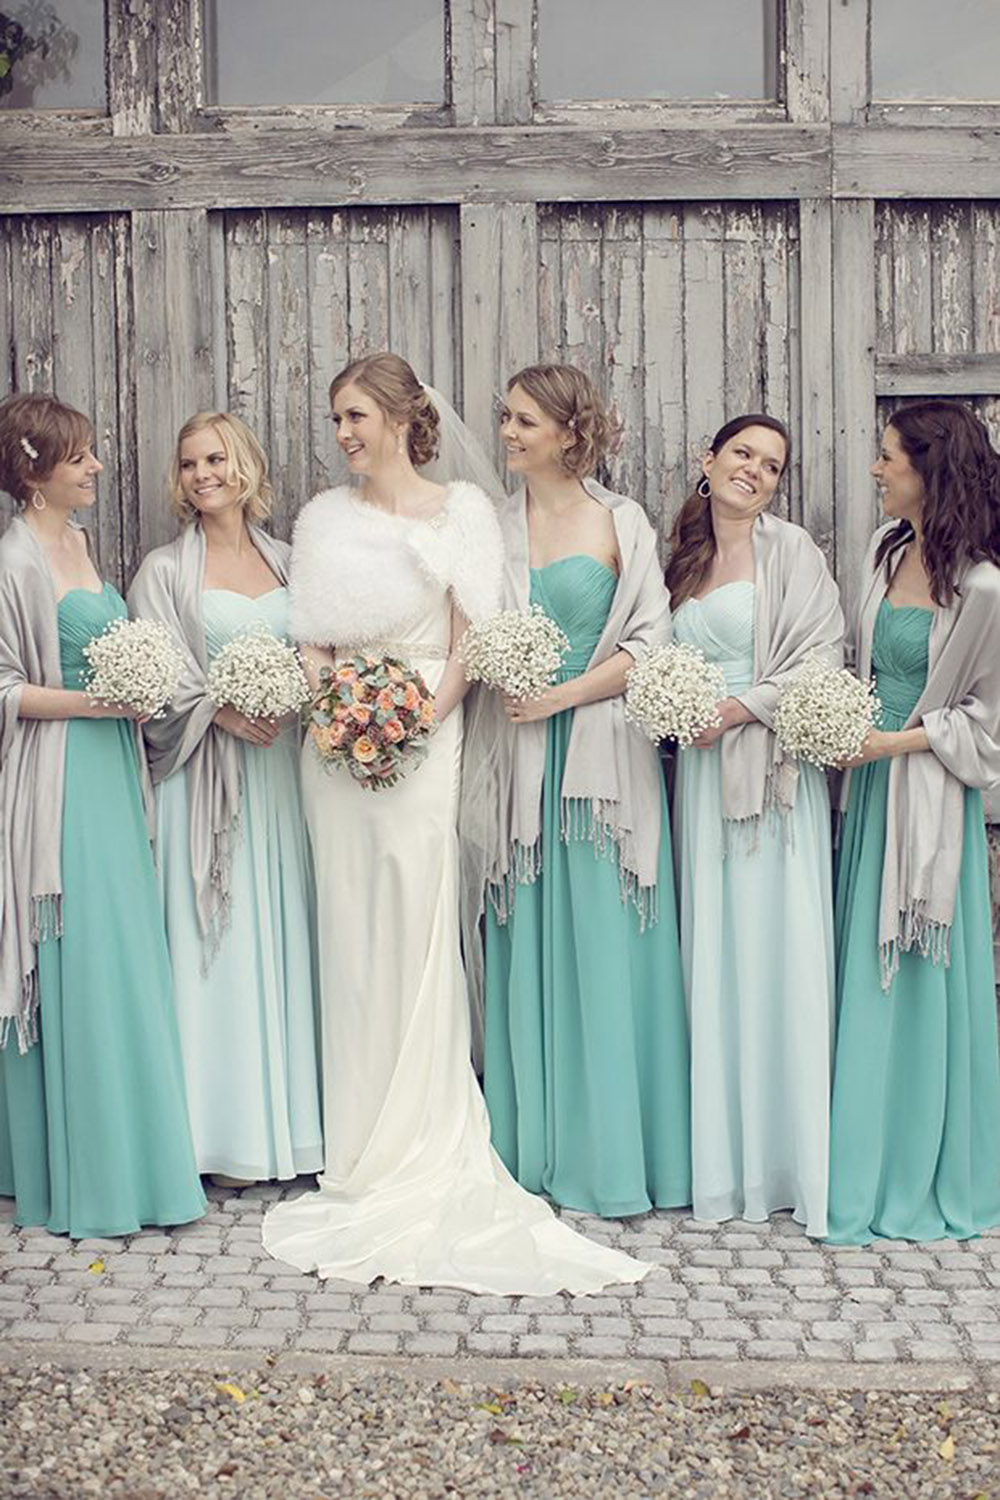 7 Reasons To Have A Fabulous Winter WeddingIvy Ellen